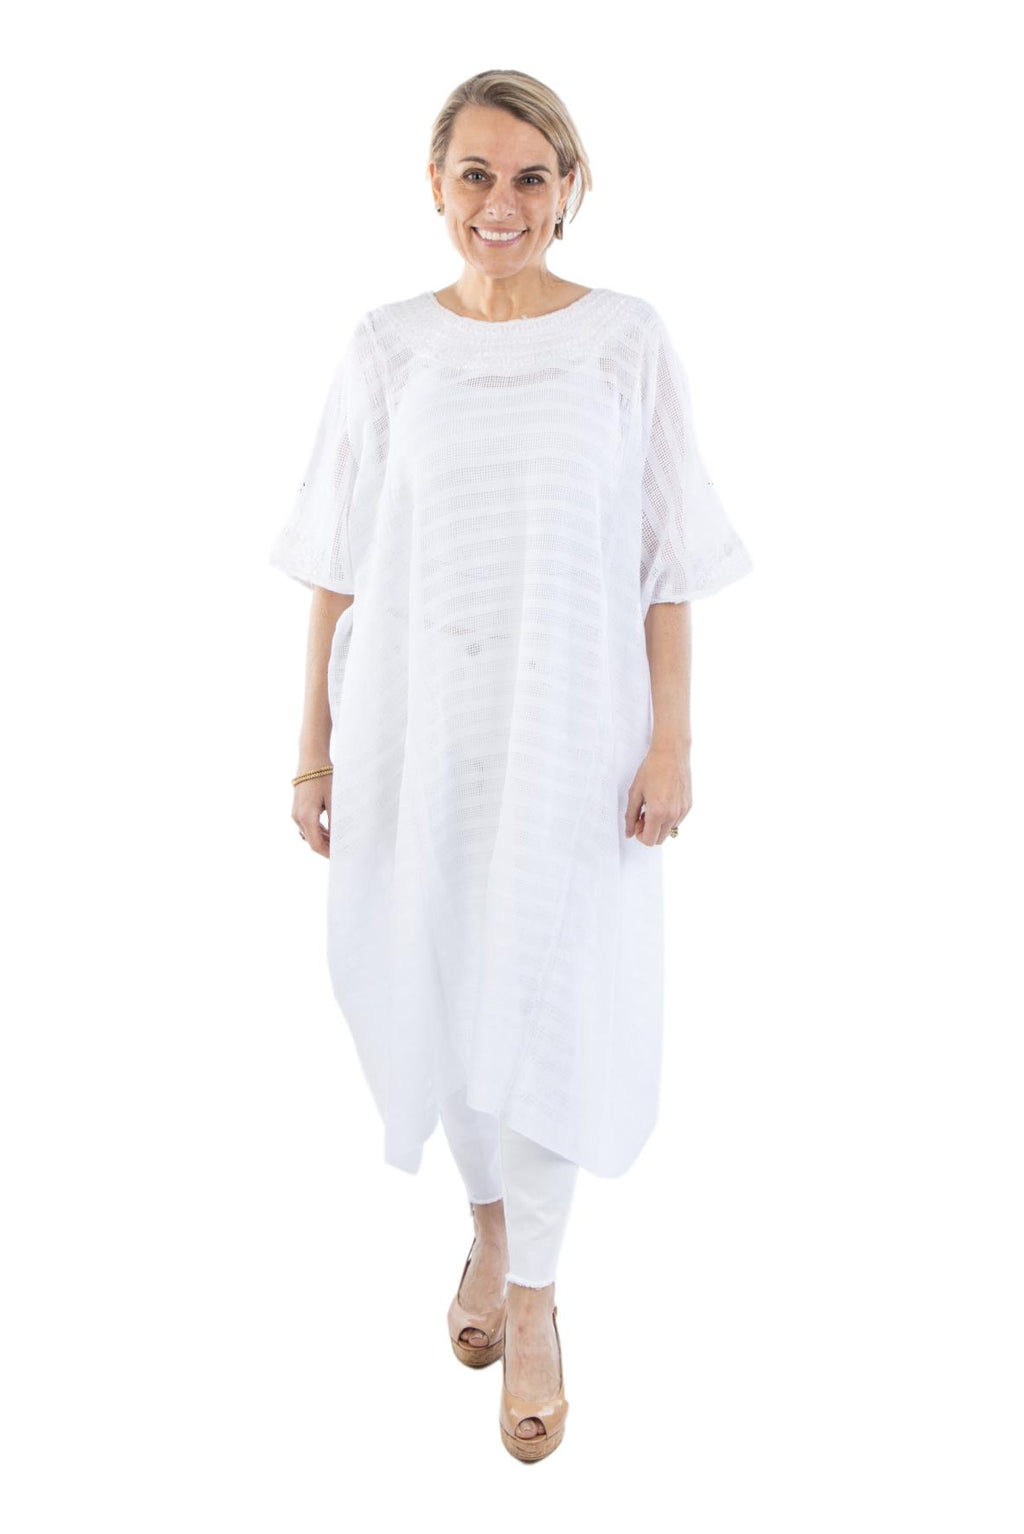 white gauzy caftan hand embroidered in Guatemala. Chic, bohemian style, fair trade, ethically made, elegant forever piece.